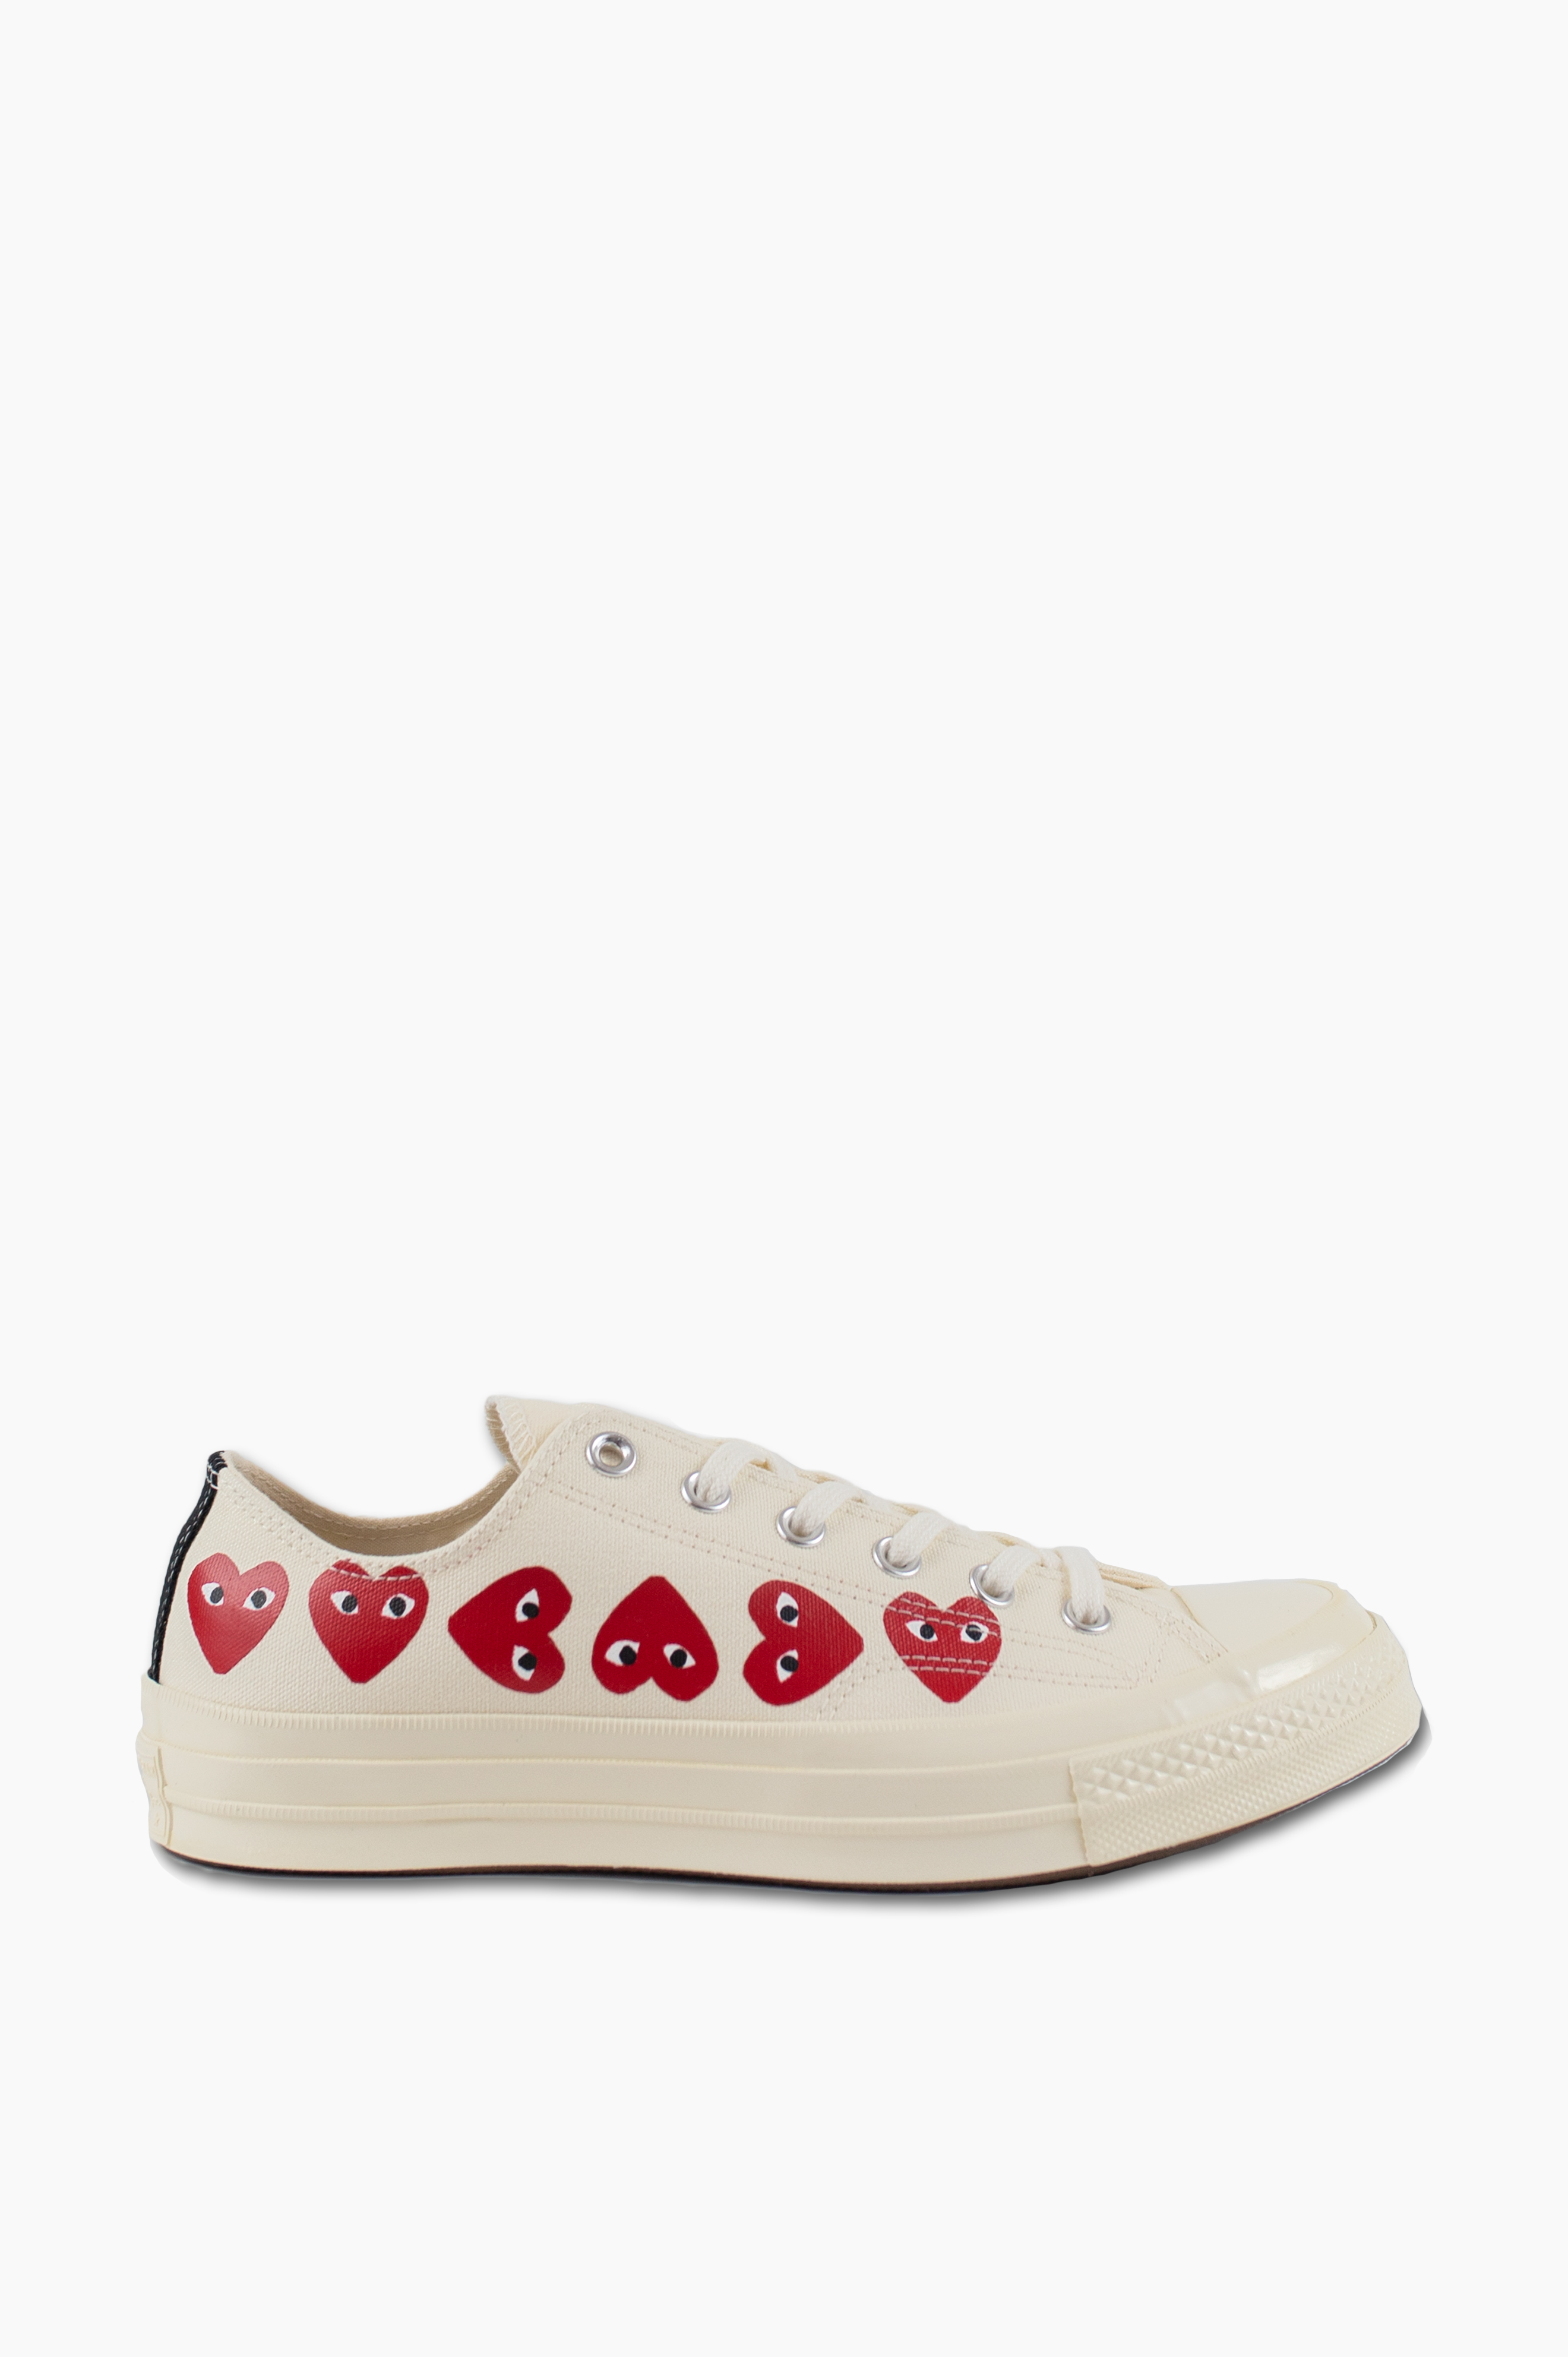 Converse Chuck Taylor All Star '70 Low Off White Multy Heart